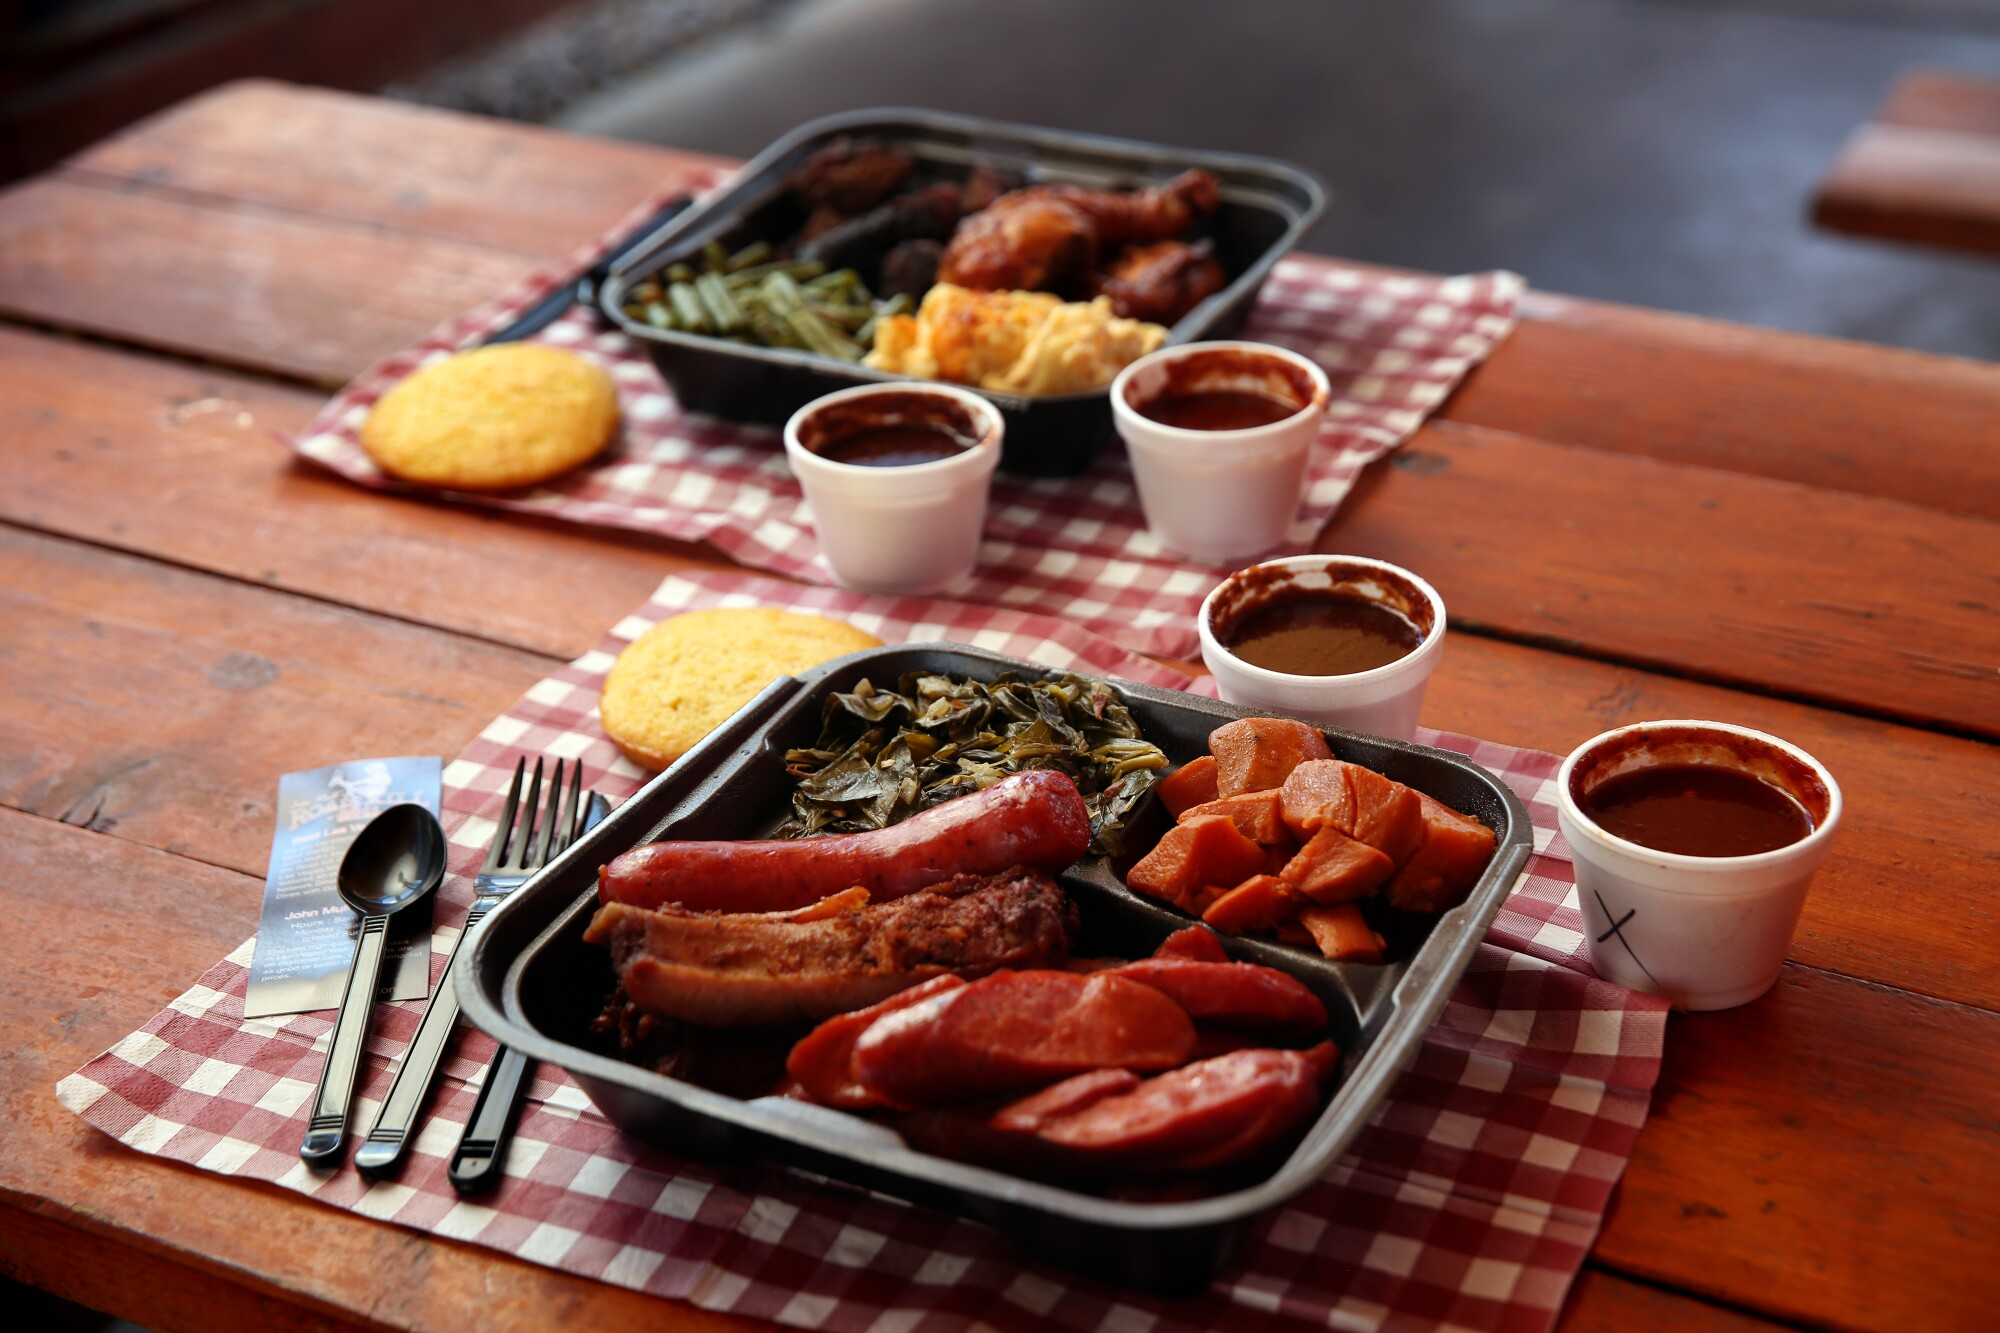 A dinner plate of hot links, collard greens and yams at John Mull's Meats & Road Kill Grill on in Las Vegas.